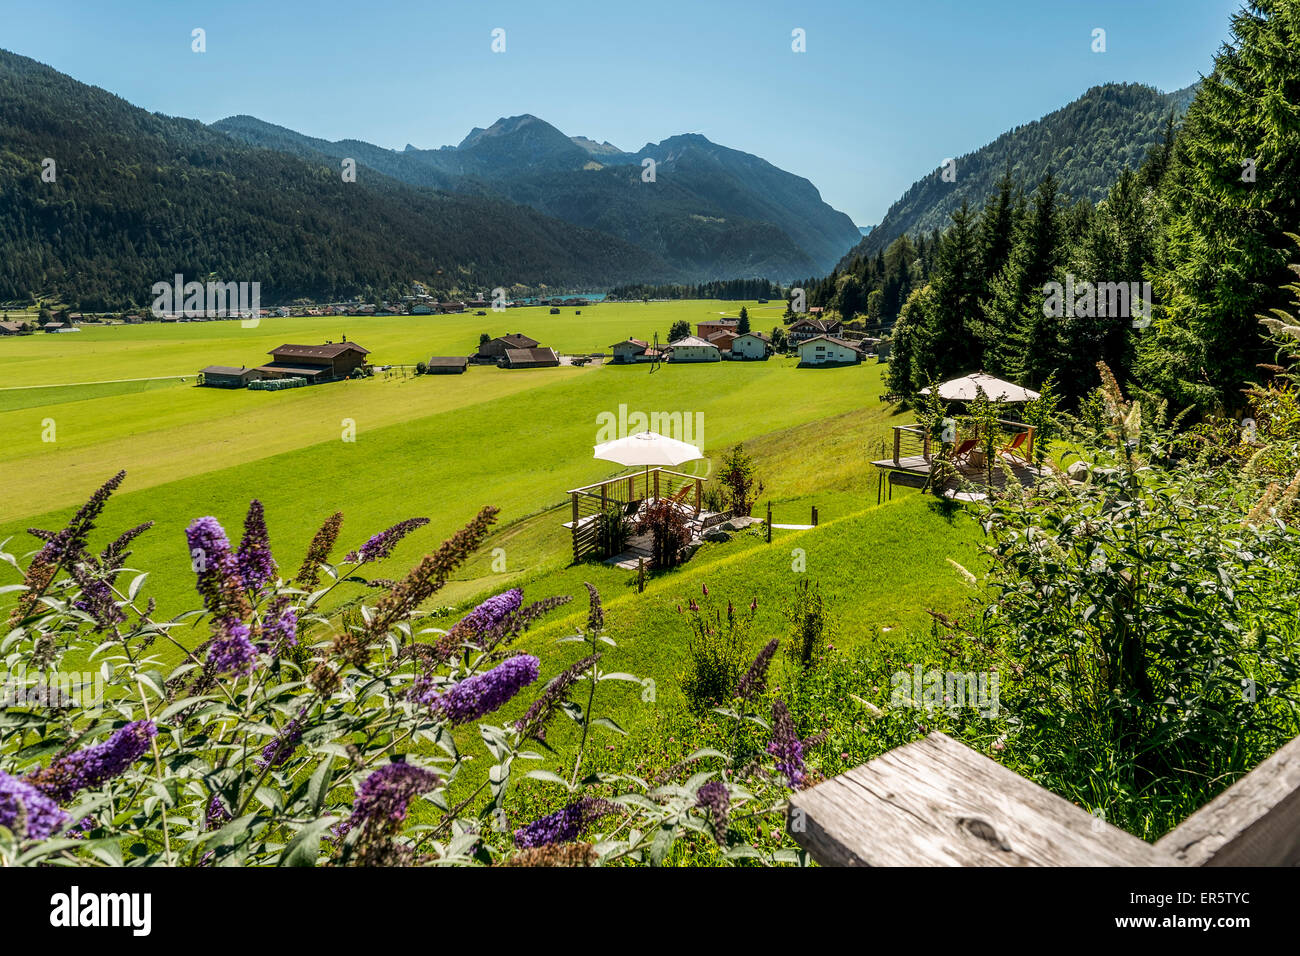 View to lake Achensee and Achenkirch, Tyrol, Austria - Stock Image